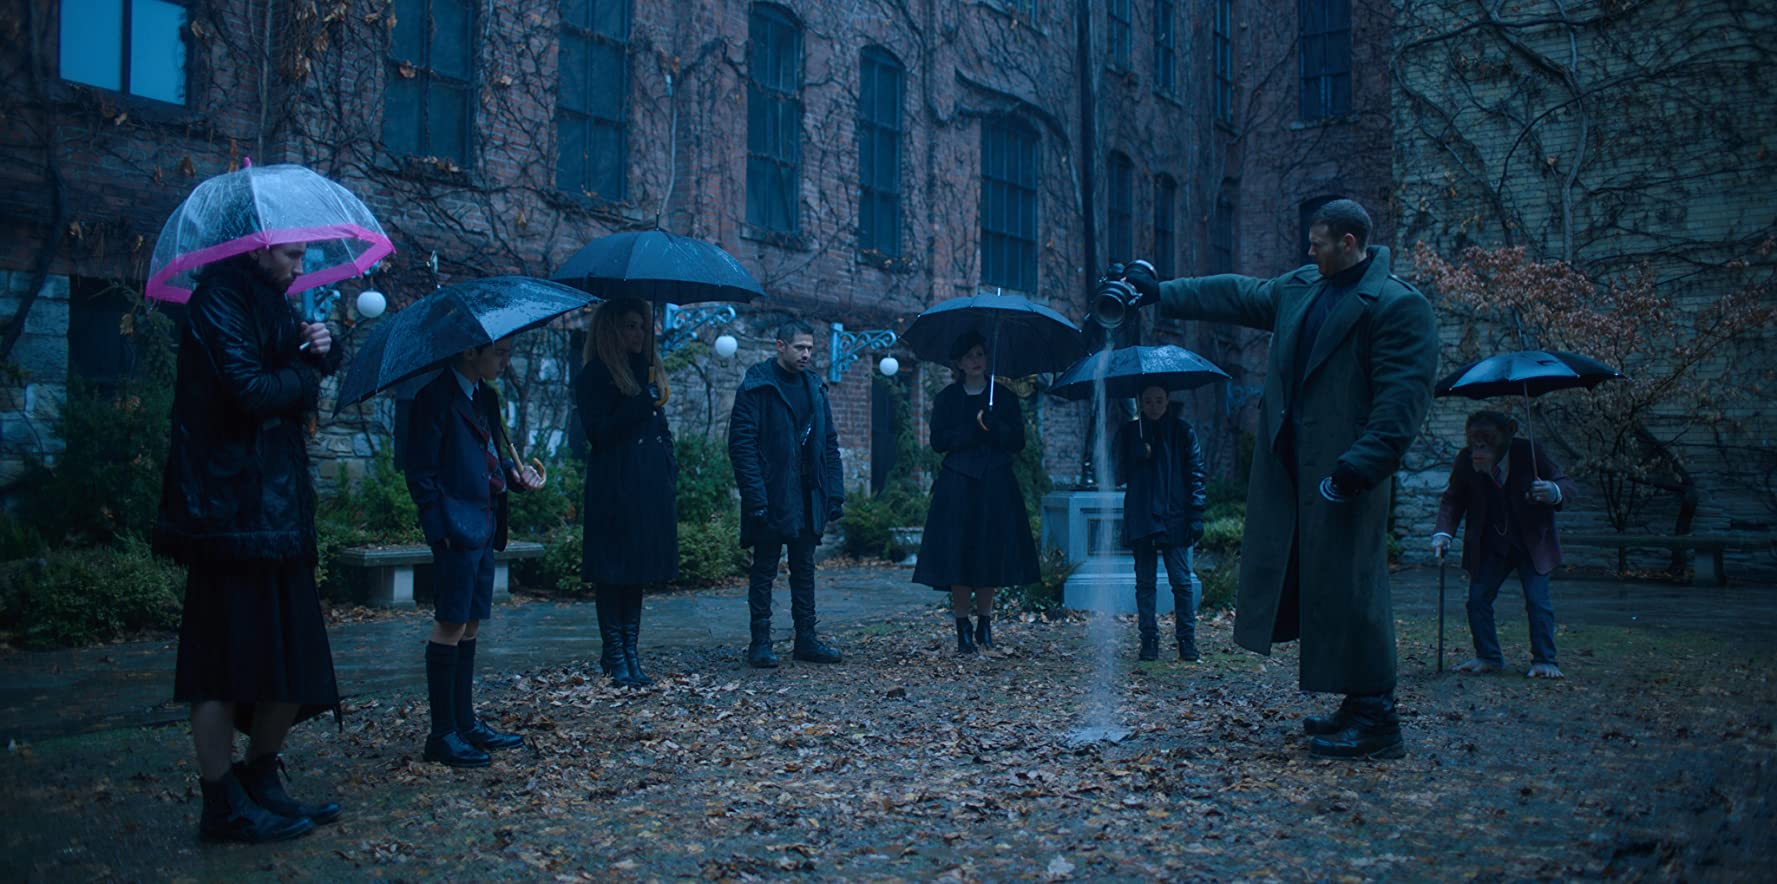 Adam Godley, Ellen Page, Robert Sheehan, Tom Hopper, David Castañeda, Aidan Gallagher, Jordan Claire Robbins, and Emmy Raver-Lampman in The Umbrella Academy (2019)